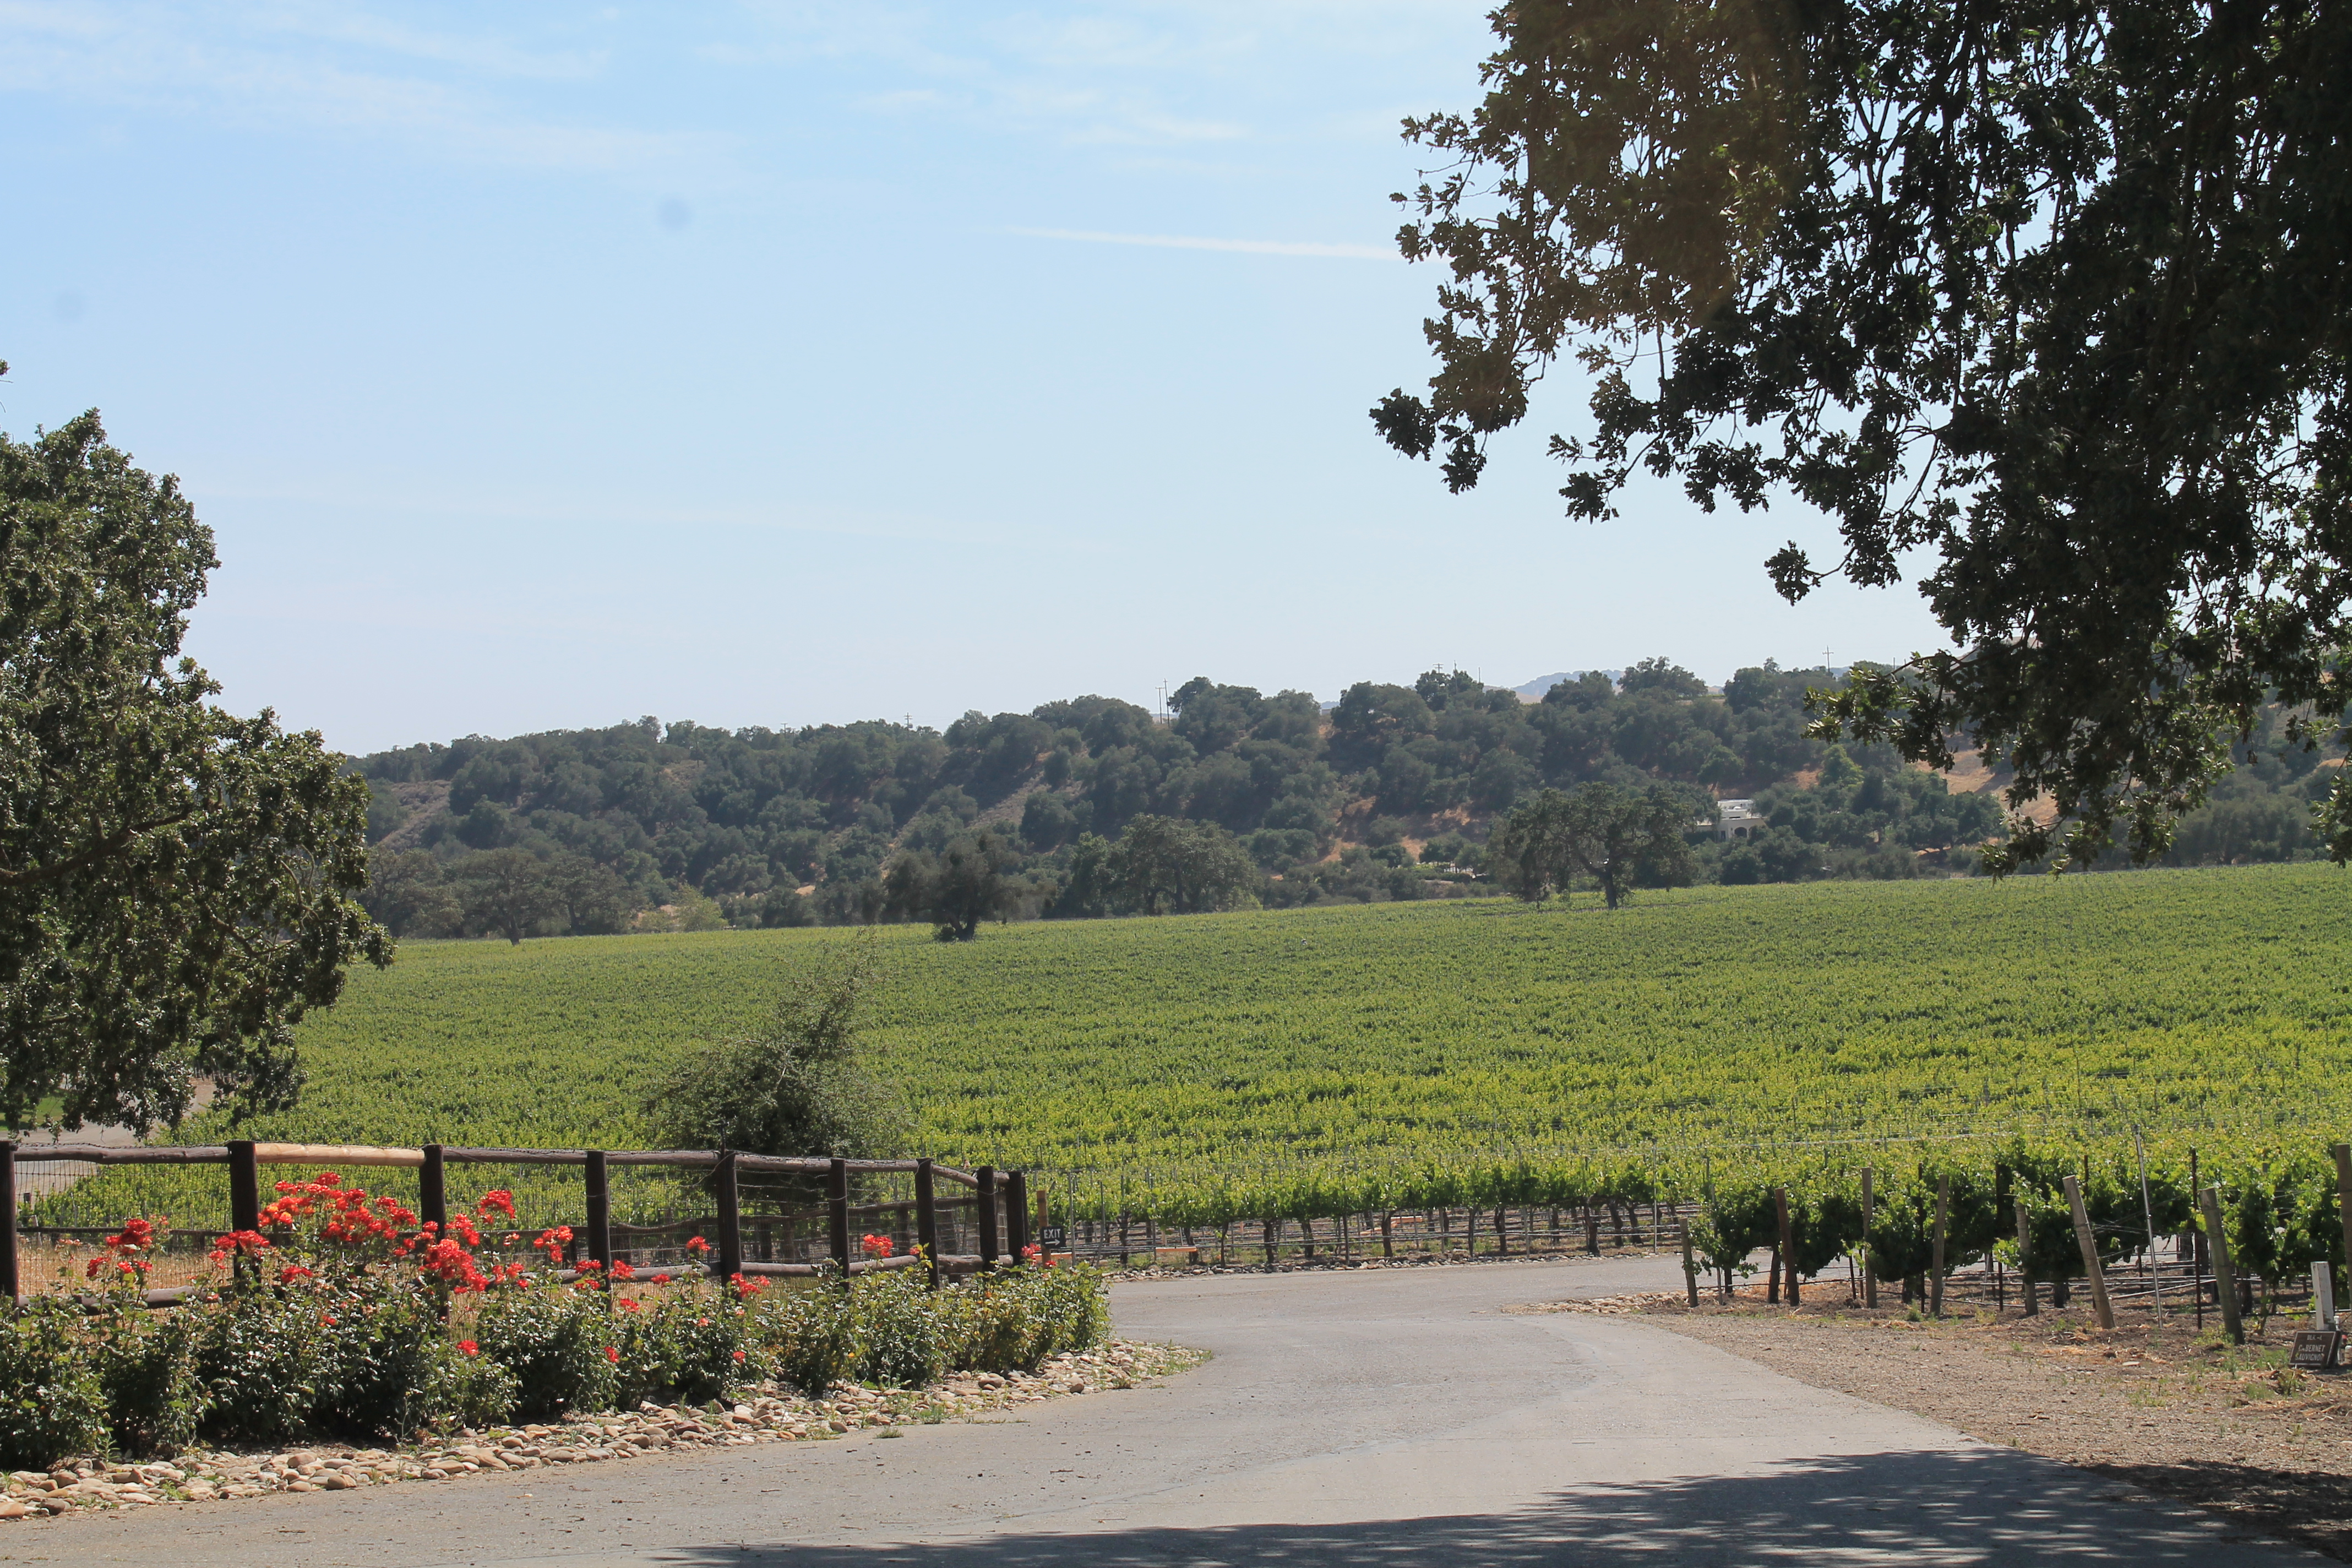 Koehler Winery's vines are over 30 years old